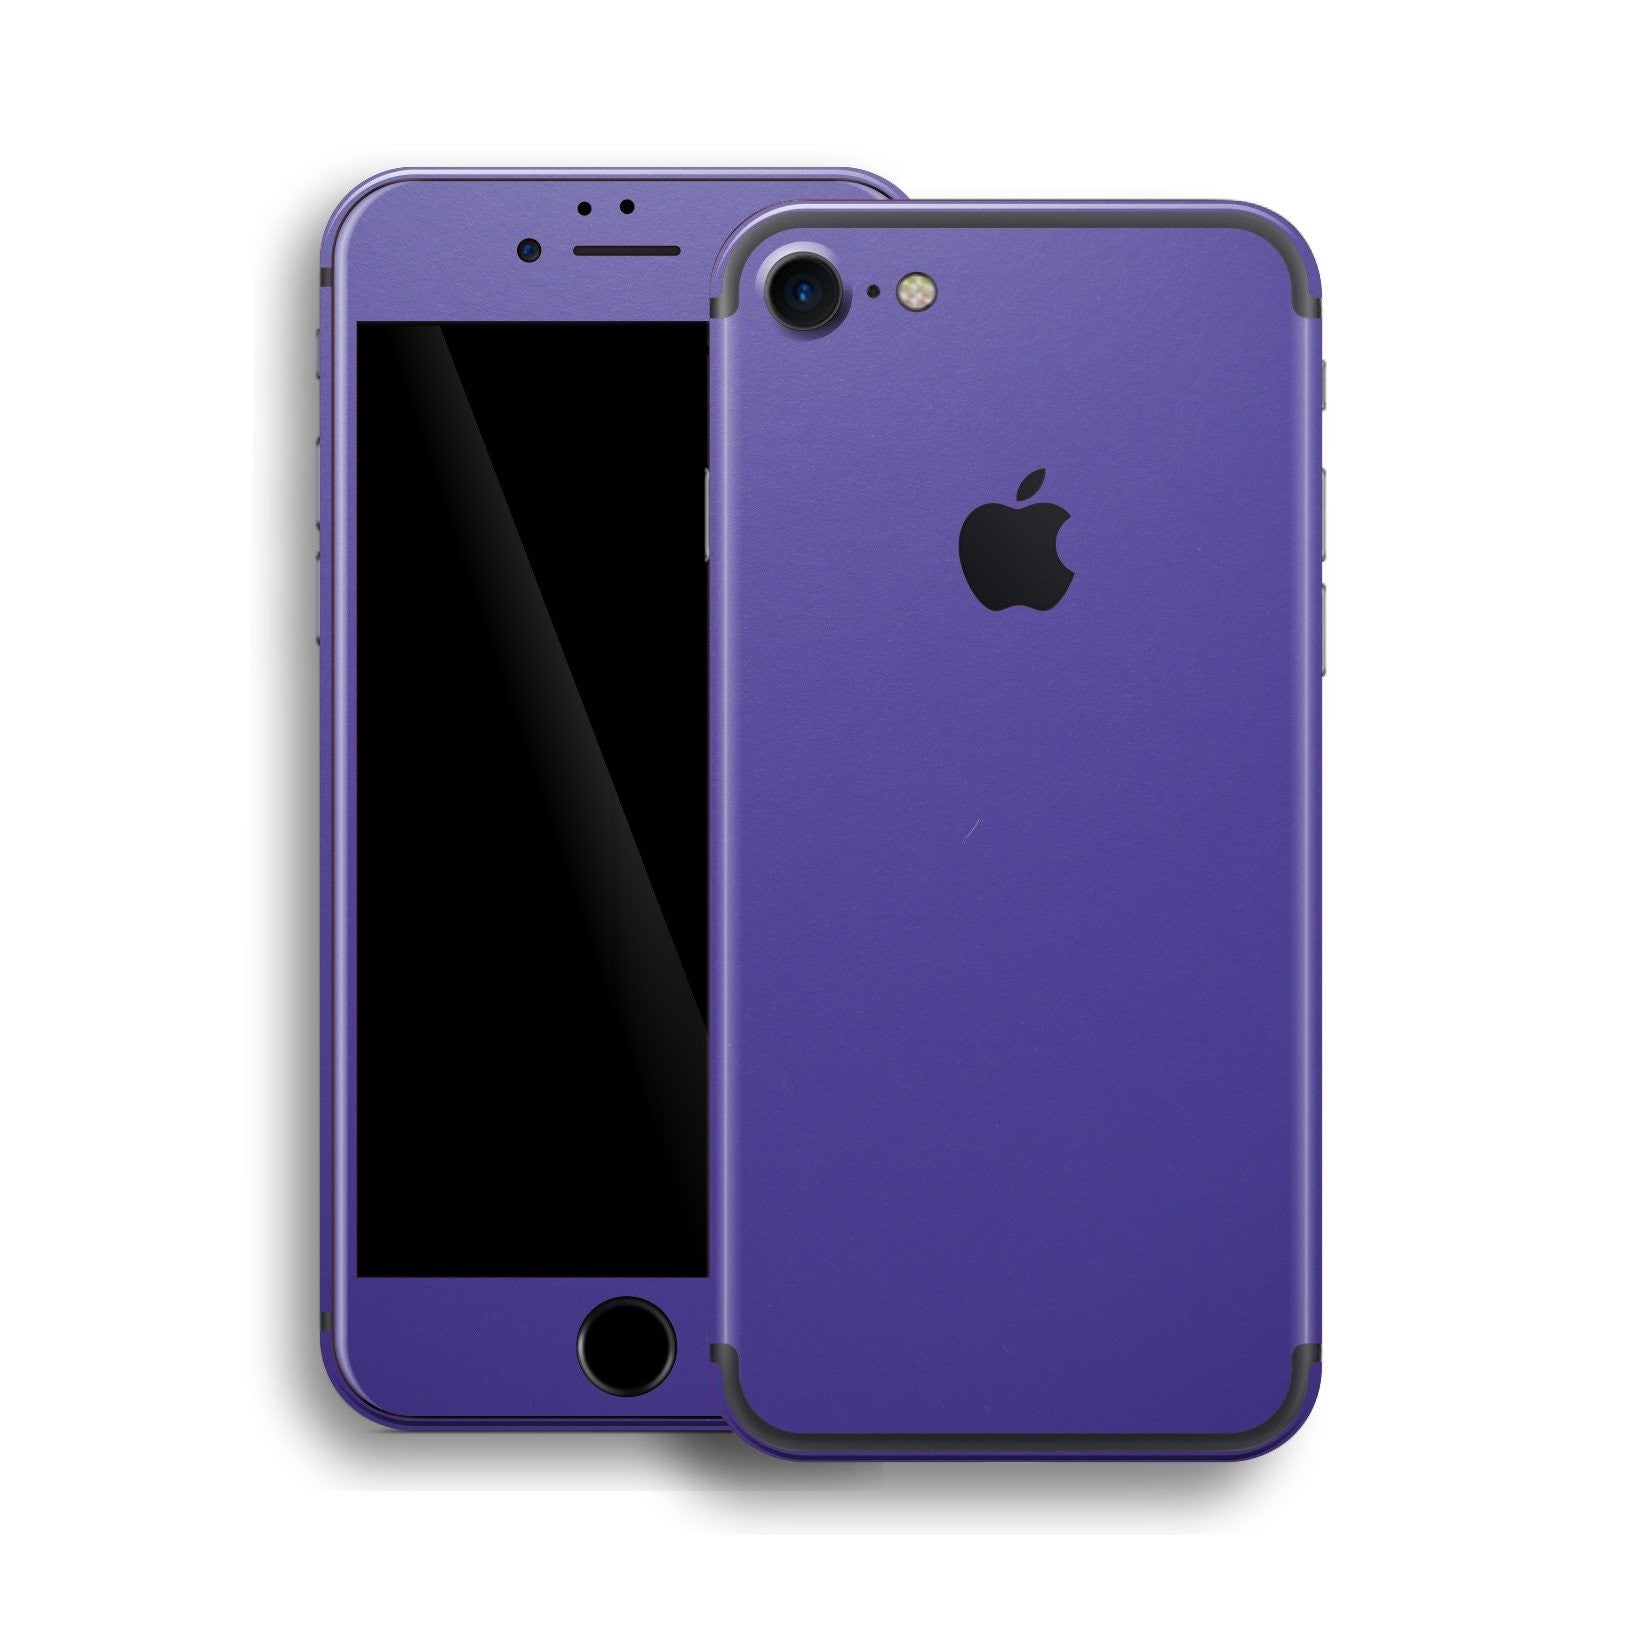 iPhone 7 Royal Purple Matt Matte Skin, Wrap, Decal, Protector, Cover by EasySkinz | EasySkinz.com